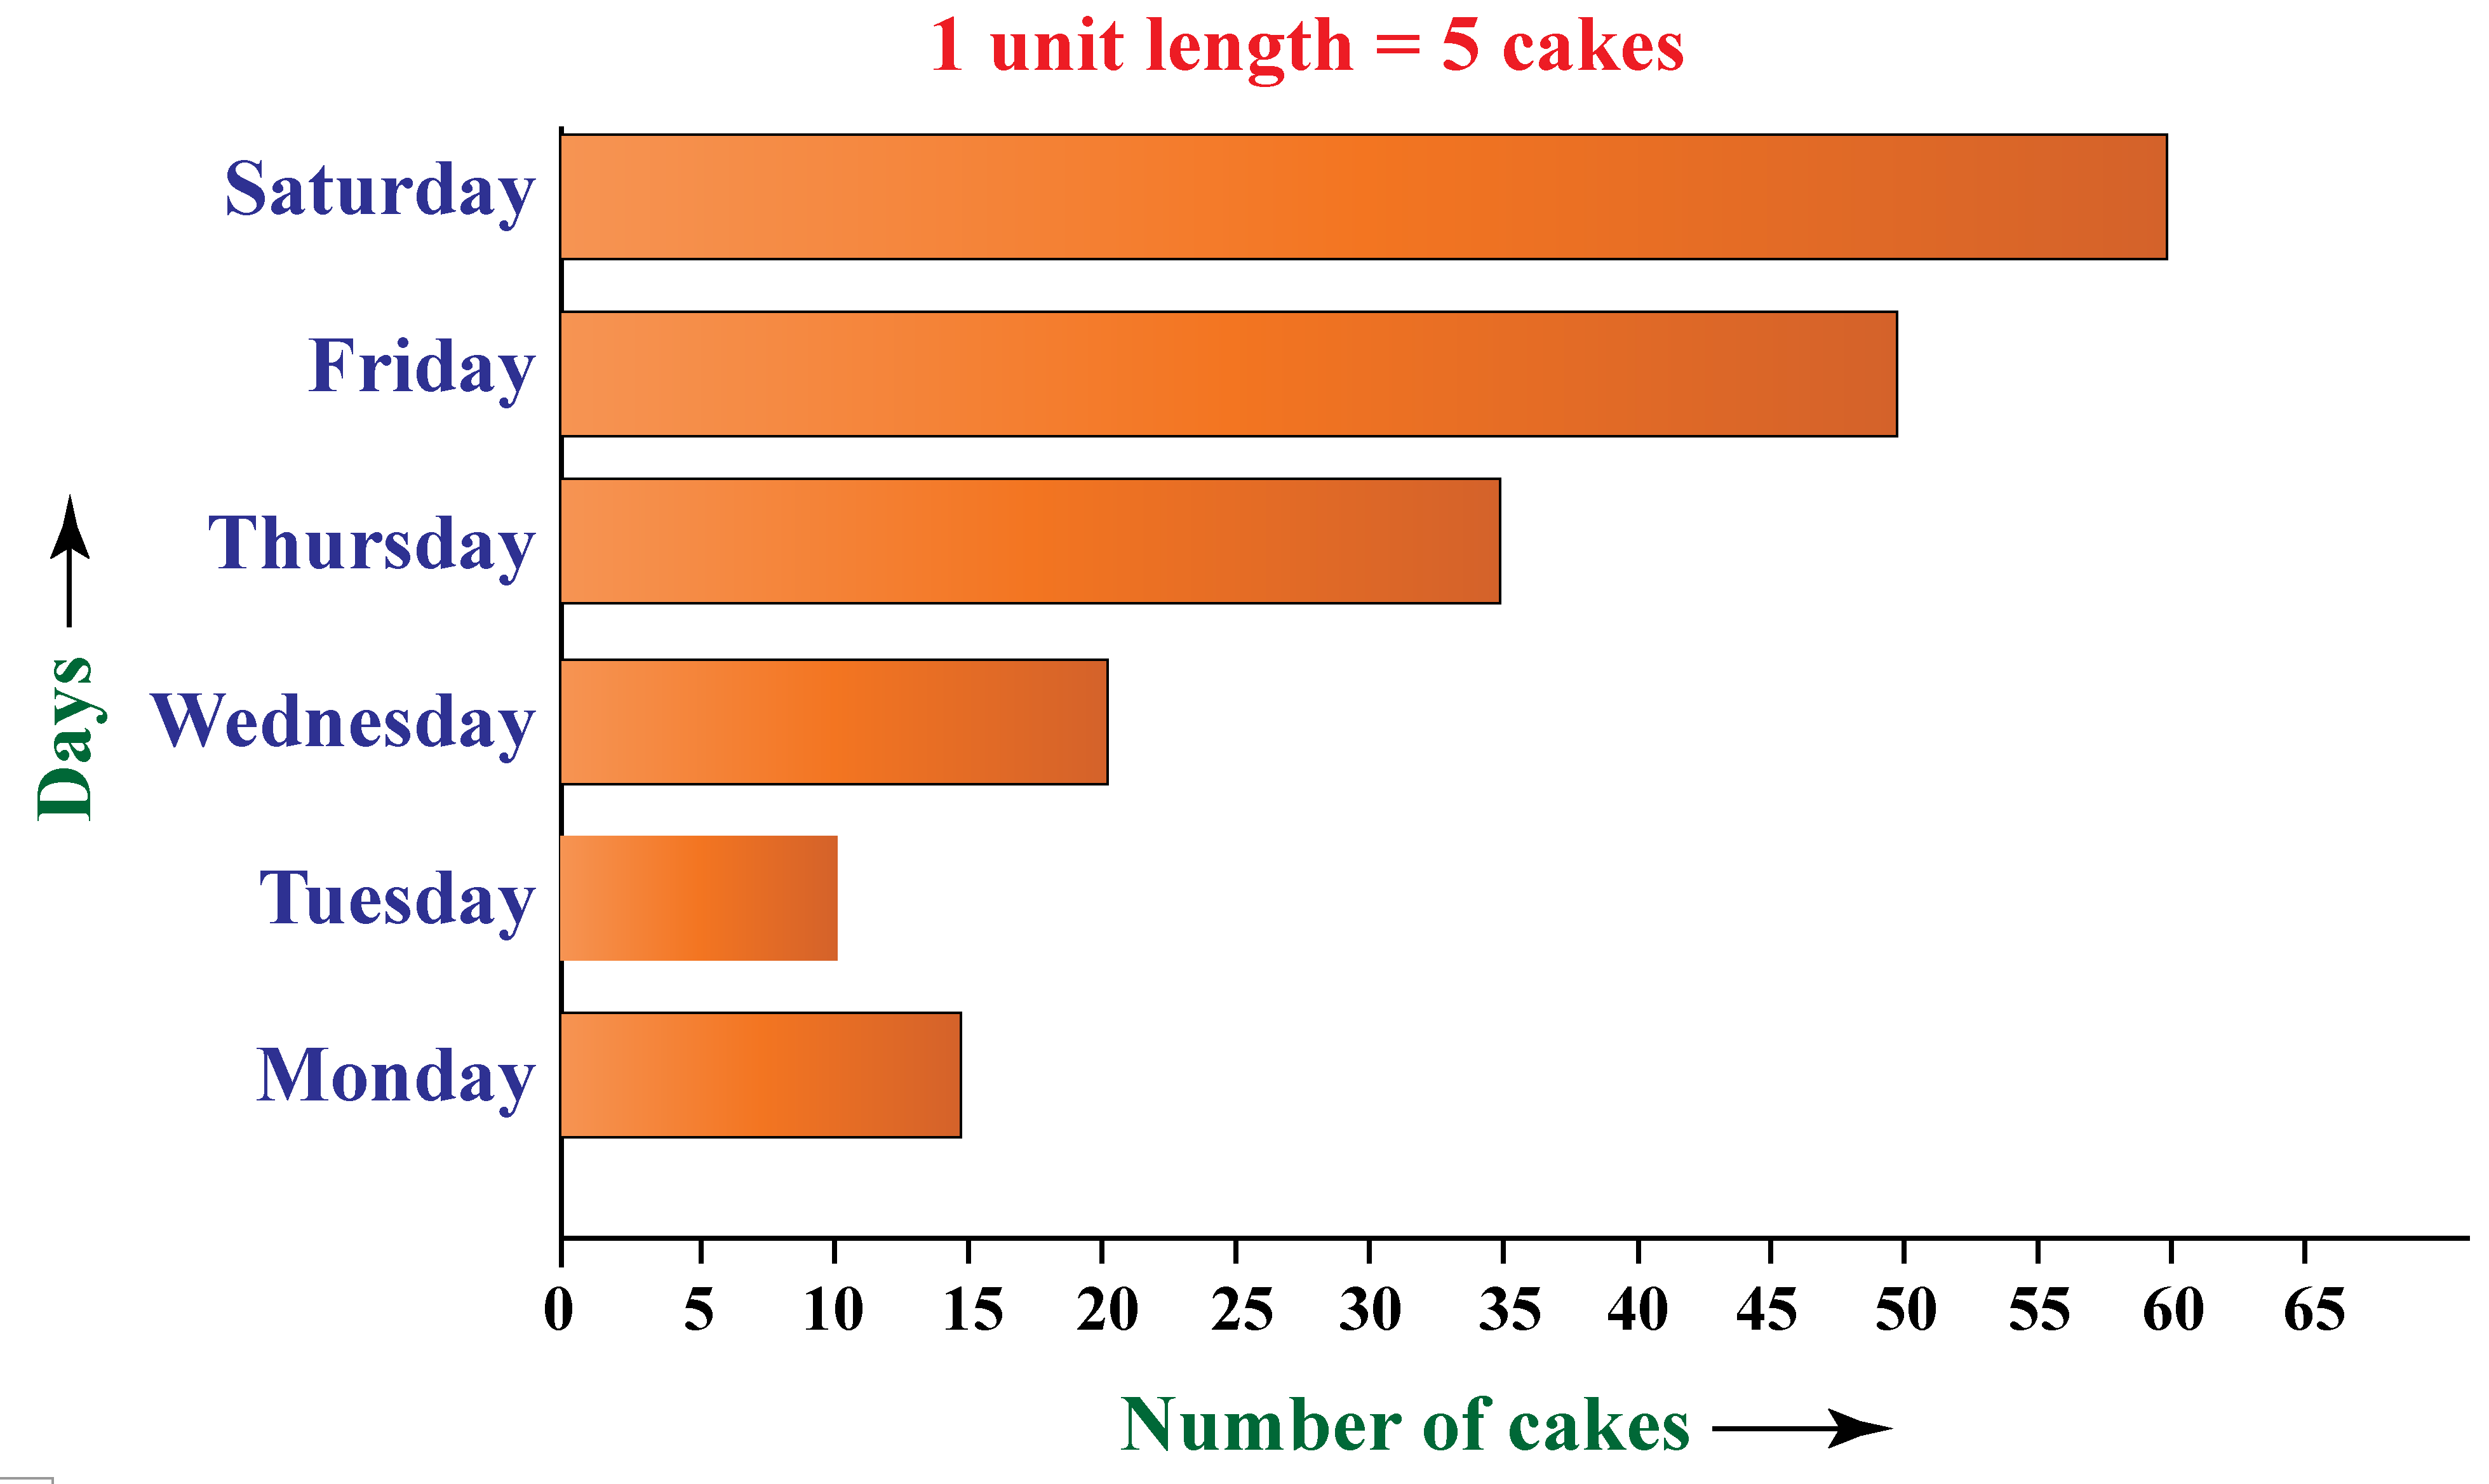 bar graph which is showing the bakingof cakes in a bakeryfrom Monday to Saturday.